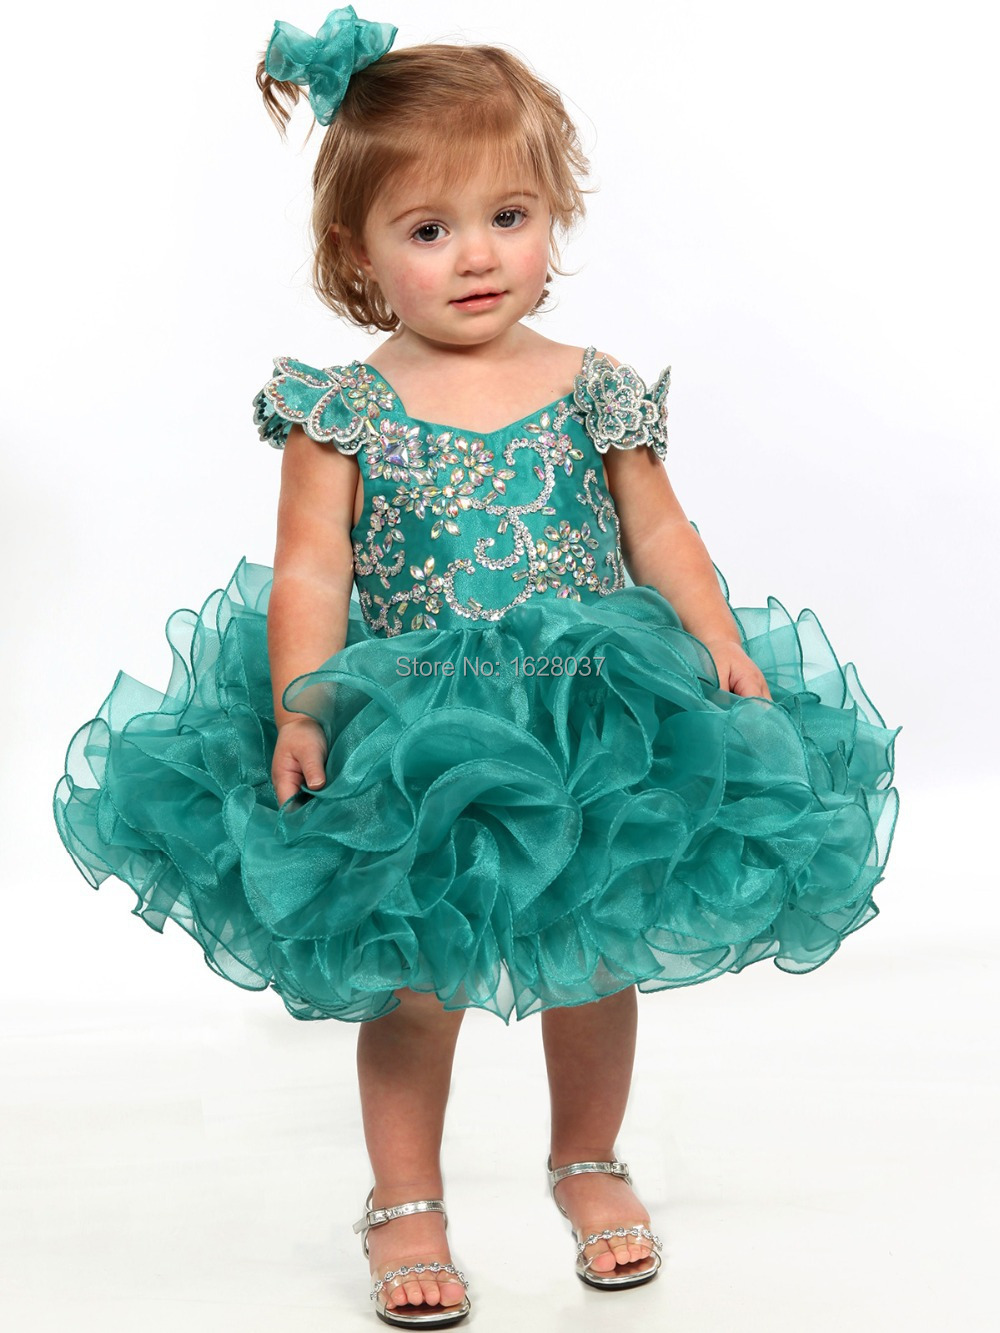 Lovely Fuchsia Teal Organza Girls Cupcakes Dresses Toddler Infant ...